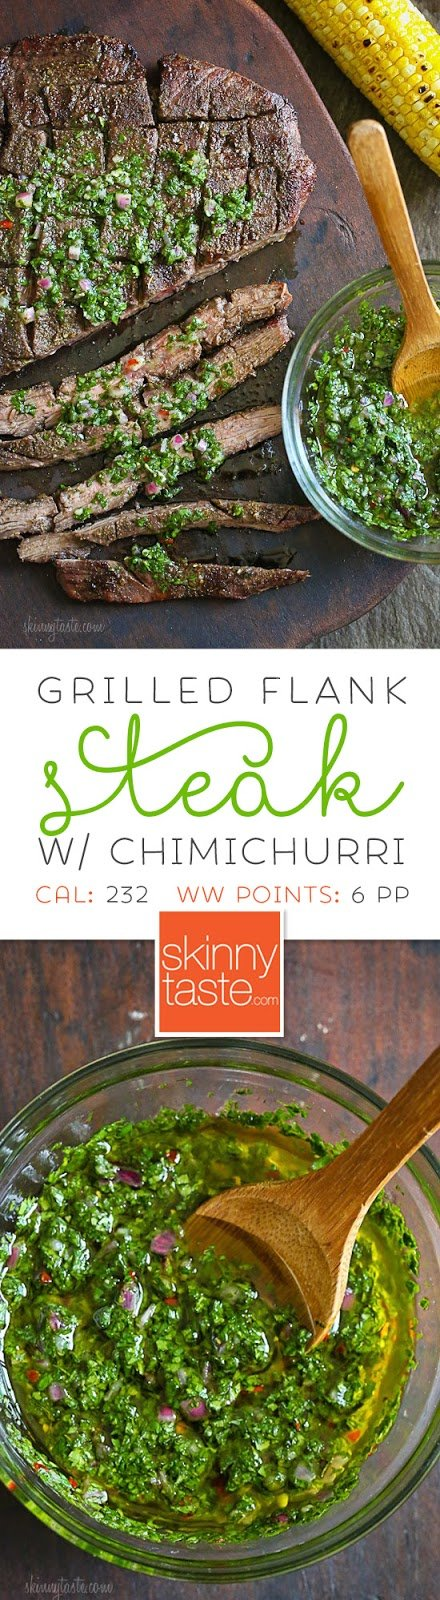 Grilled Flank Steak with Chimichurri - flank is a leaner steak, perfect for grilling topped with this delicious chimichurri sauce.